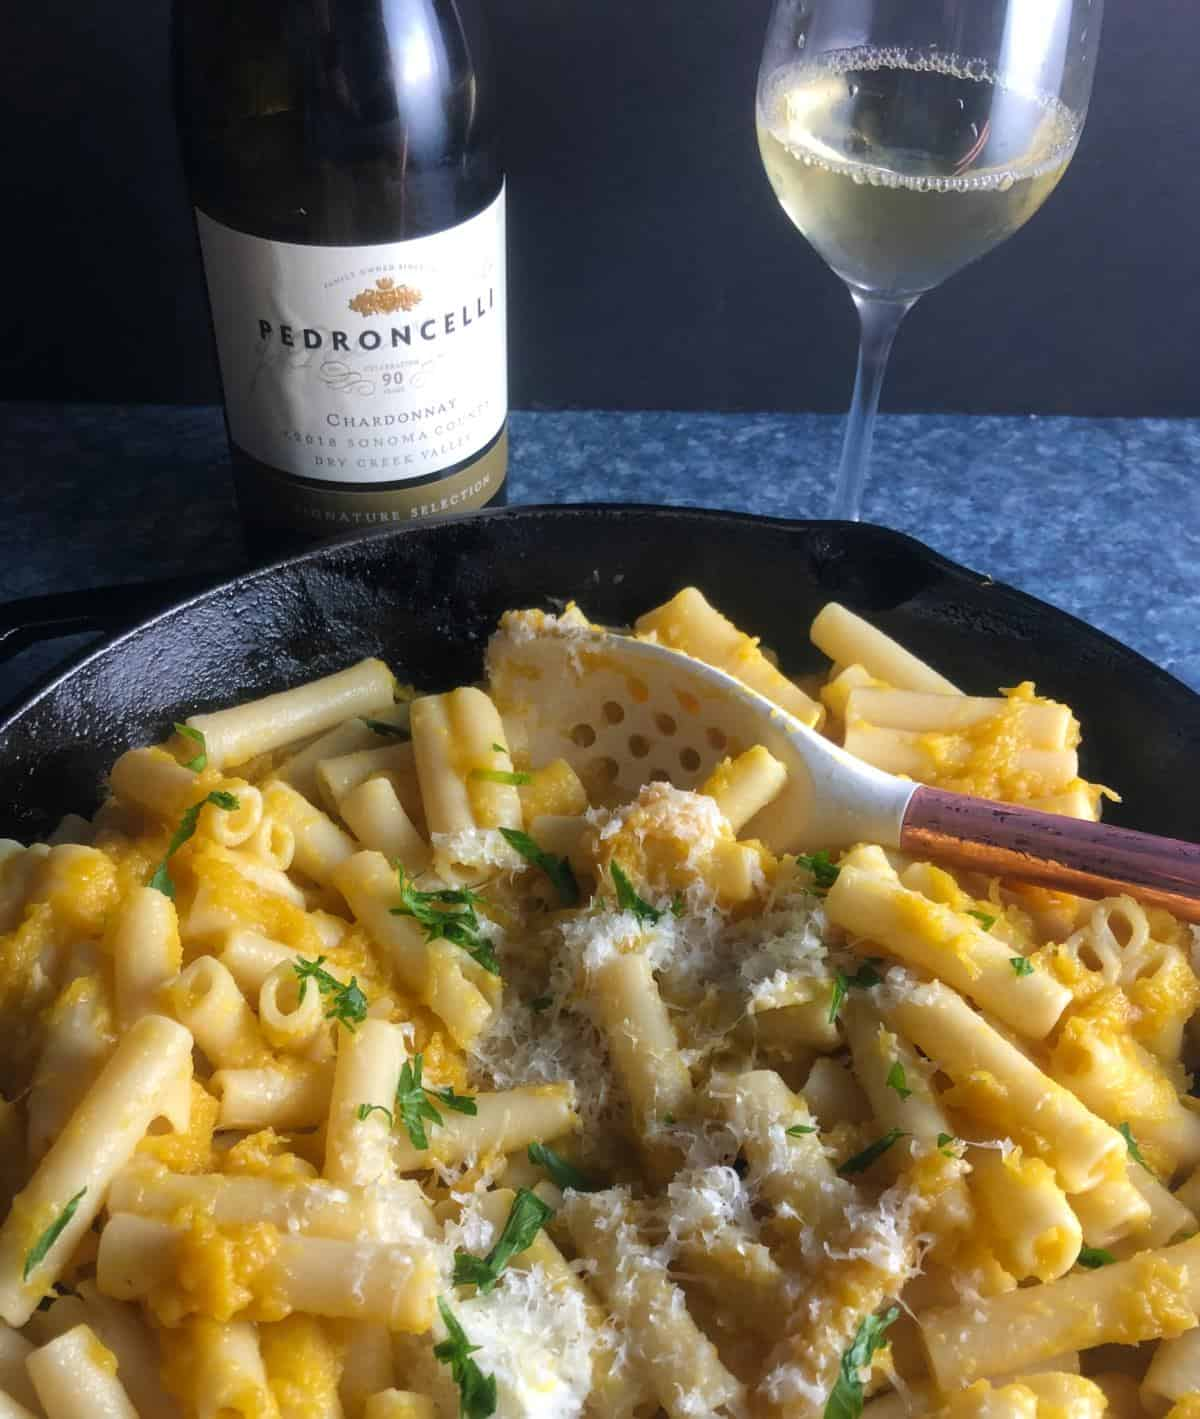 acorn squash pasta in a cast iron skillet along with a bottle and glass of Chardonnay white wine.